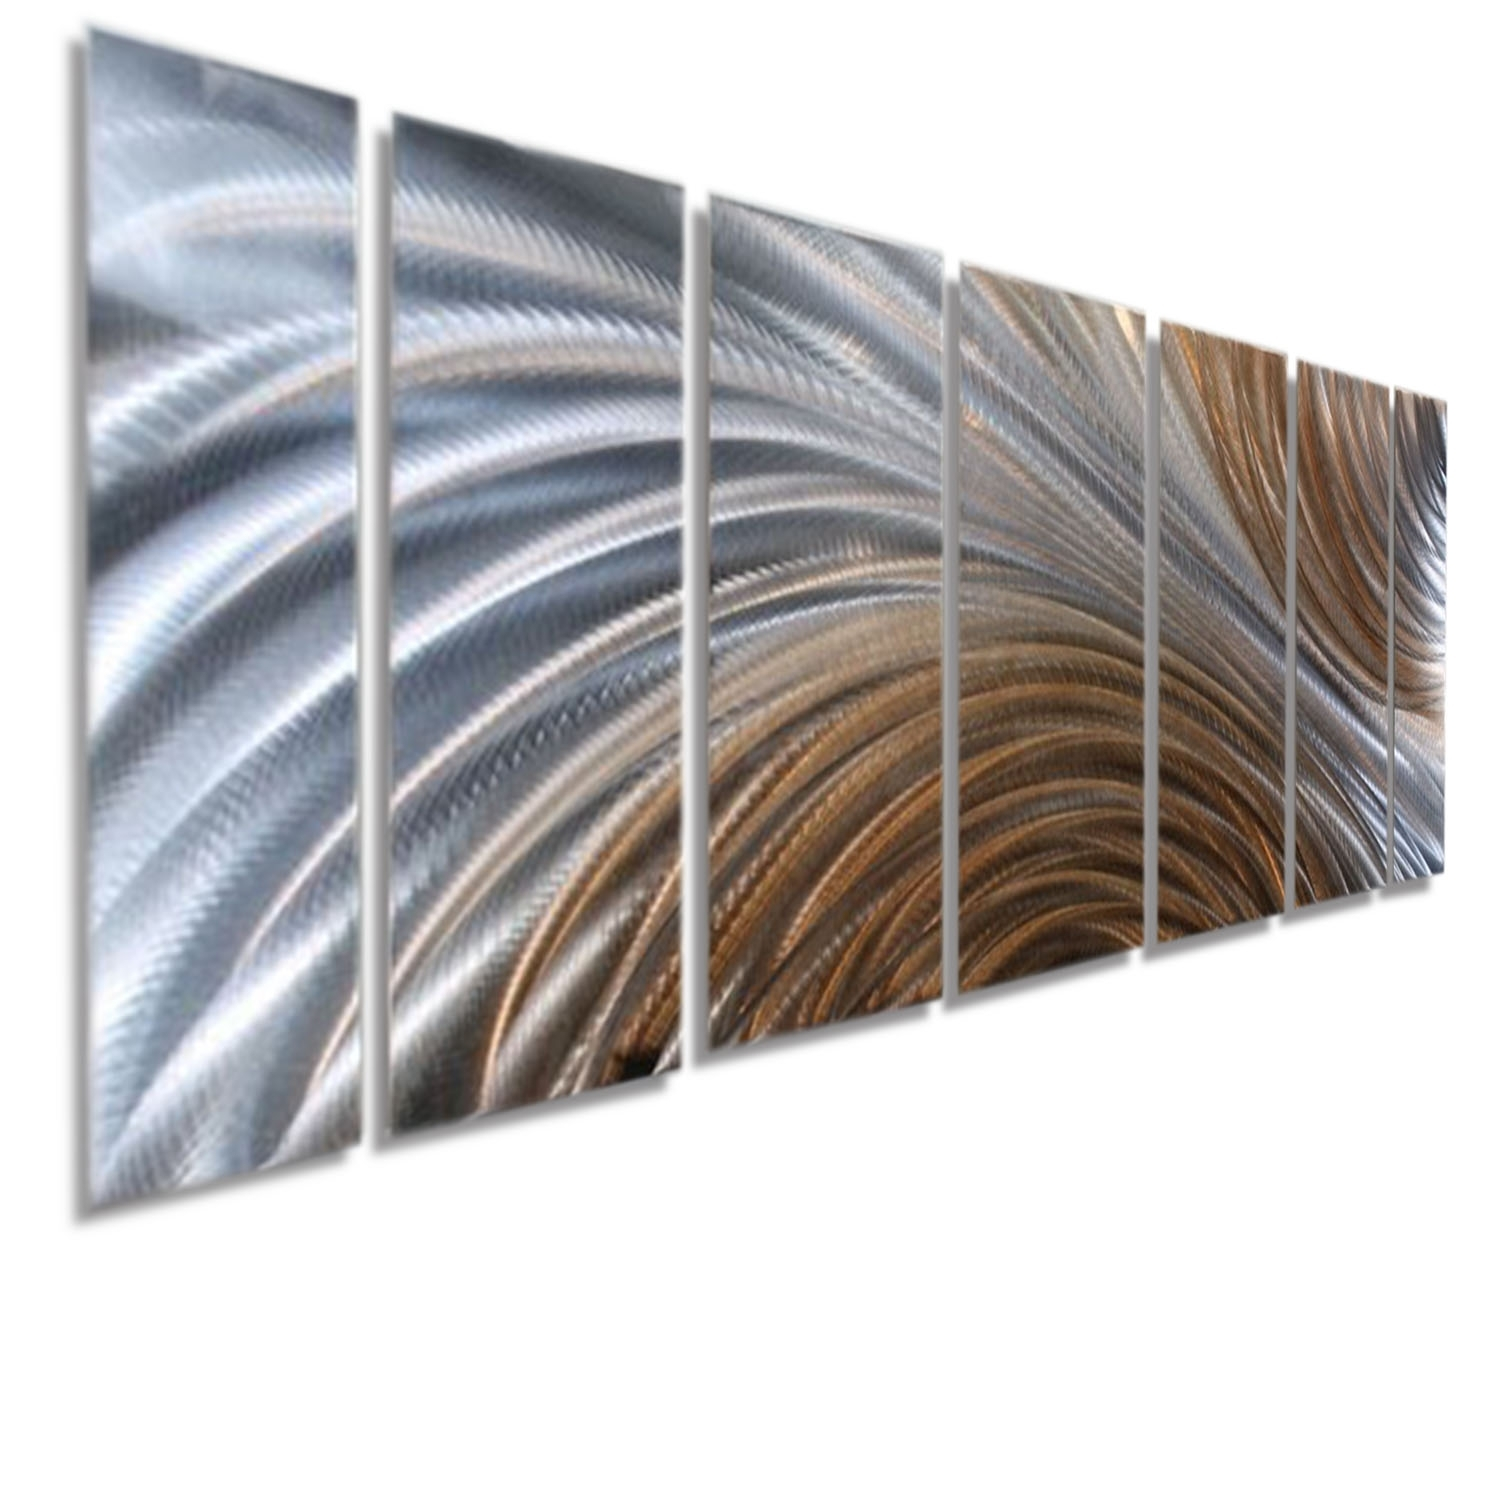 Classy 10+ Abstract Metal Wall Art Design Inspiration Of Best 25+ Regarding Latest Kindred Abstract Metal Wall Art (View 6 of 20)